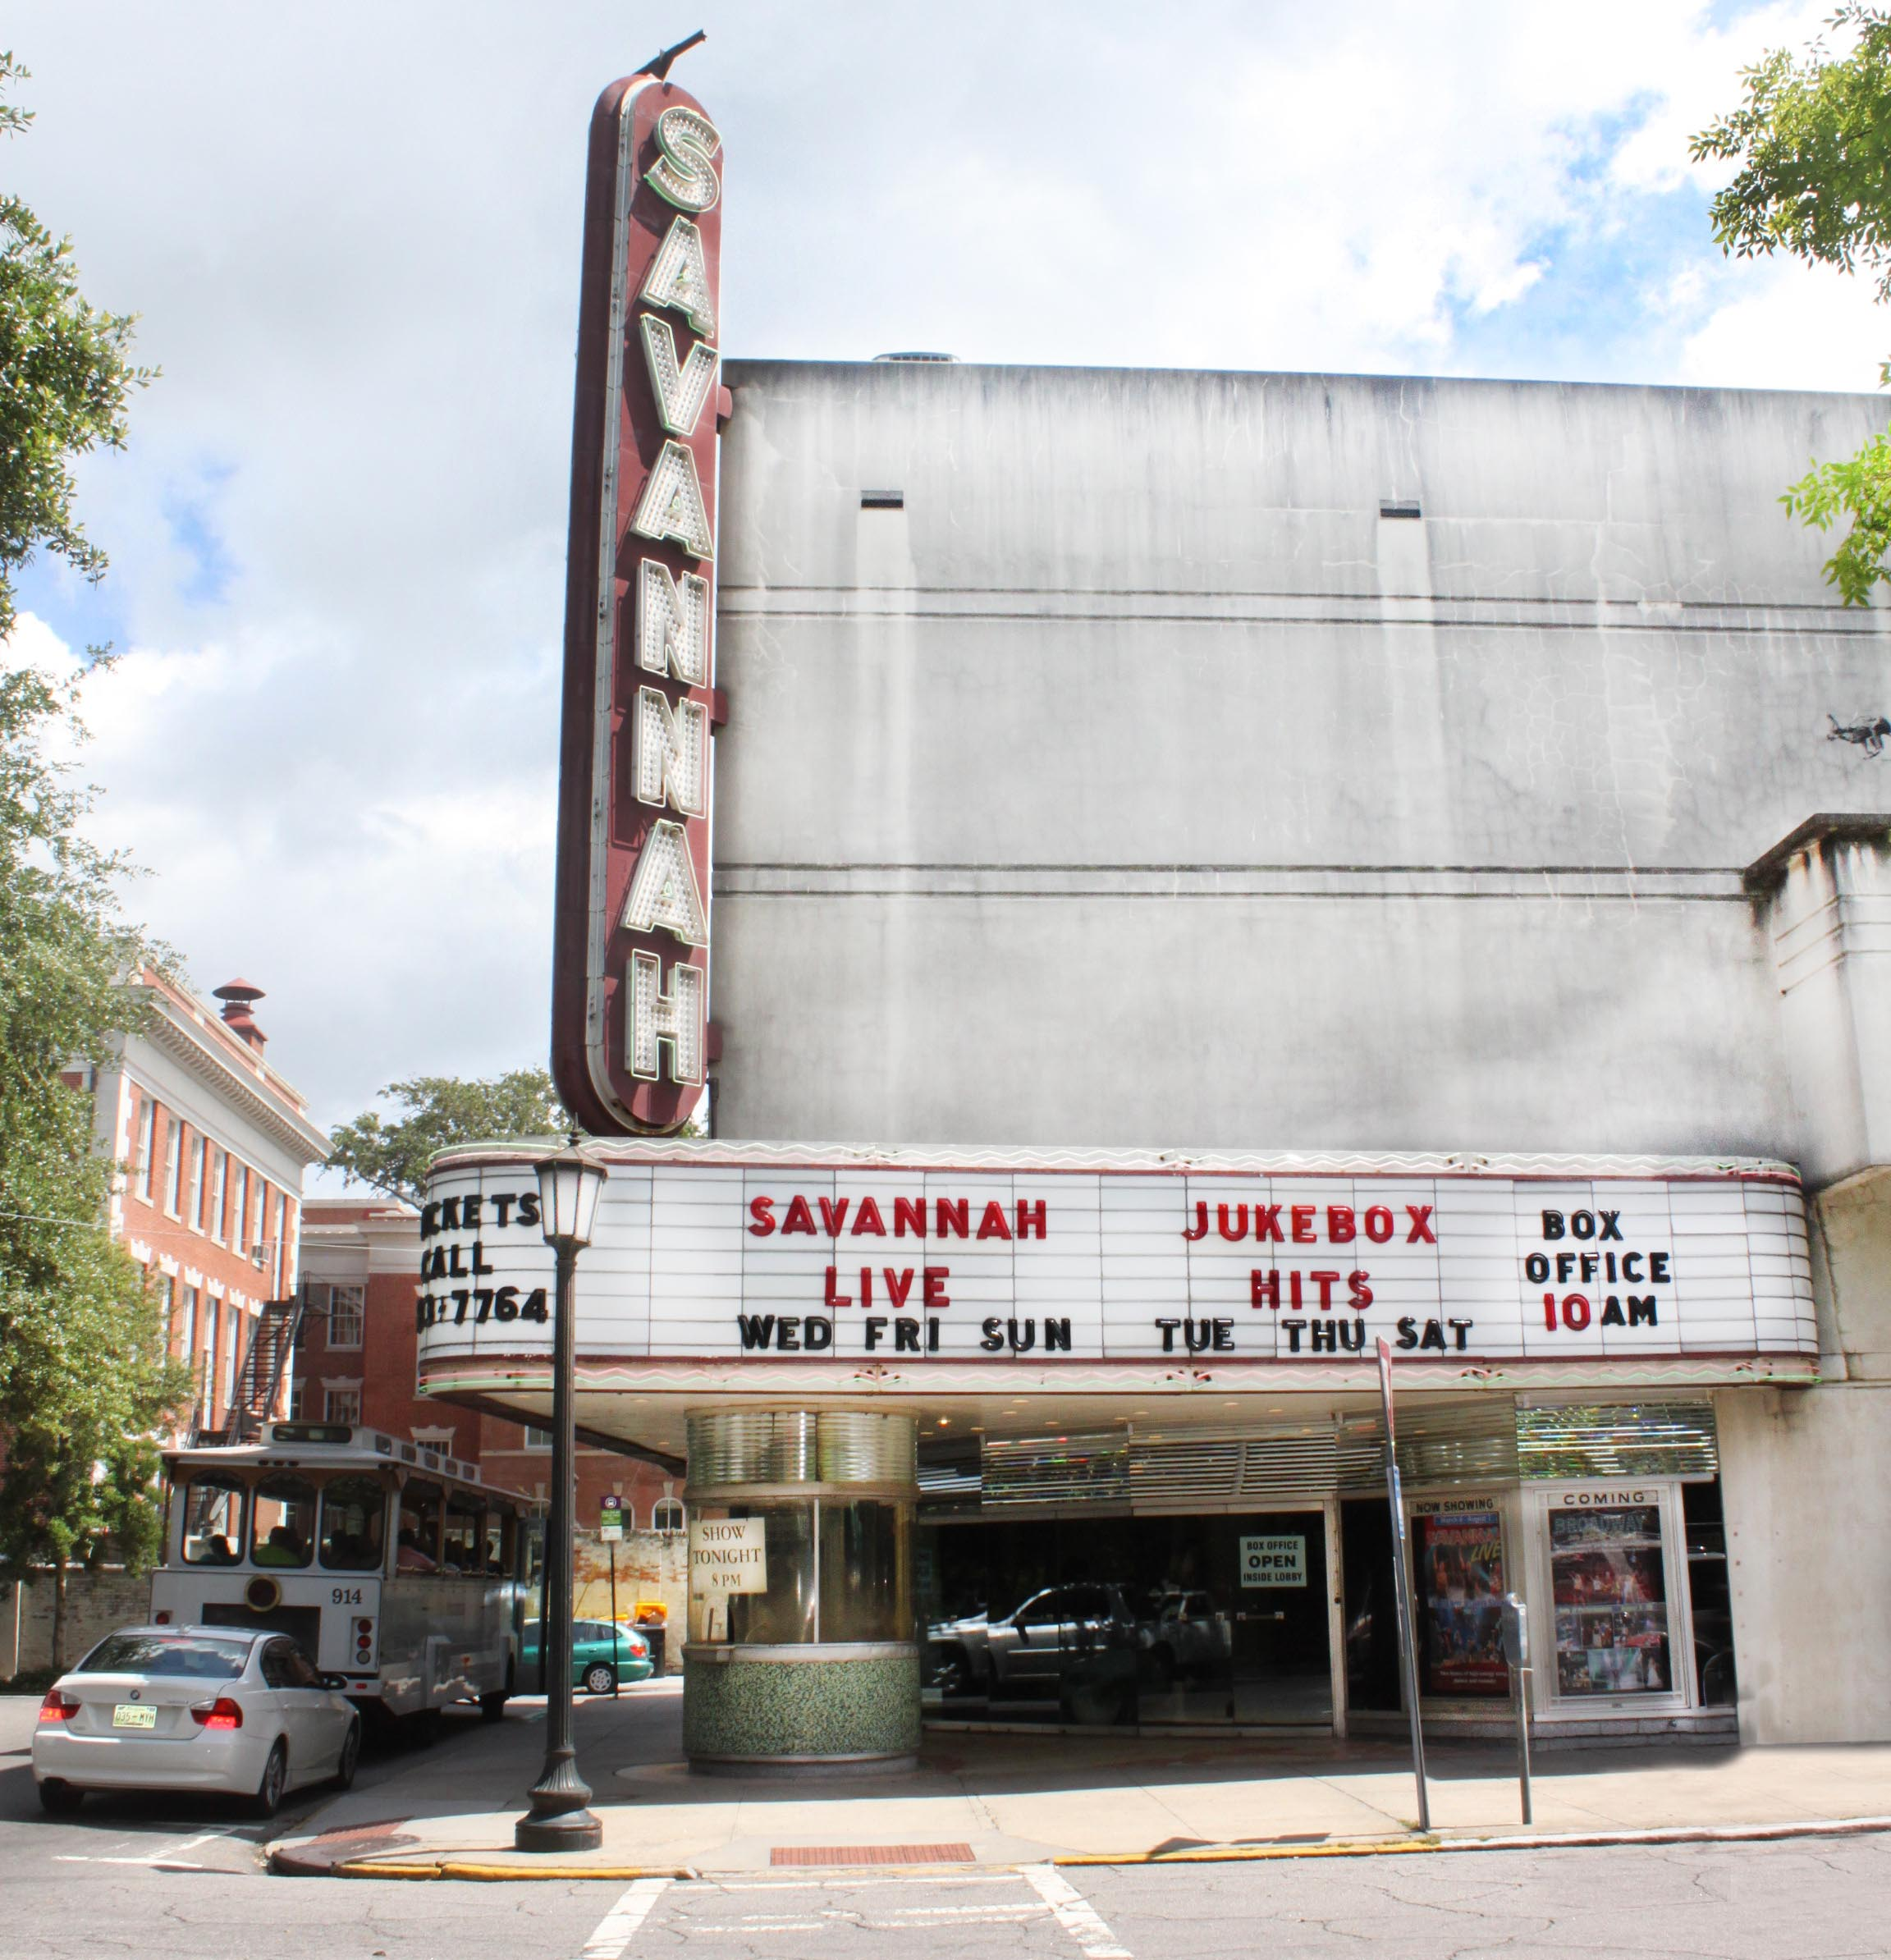 Head Over To The Savannah Theatre